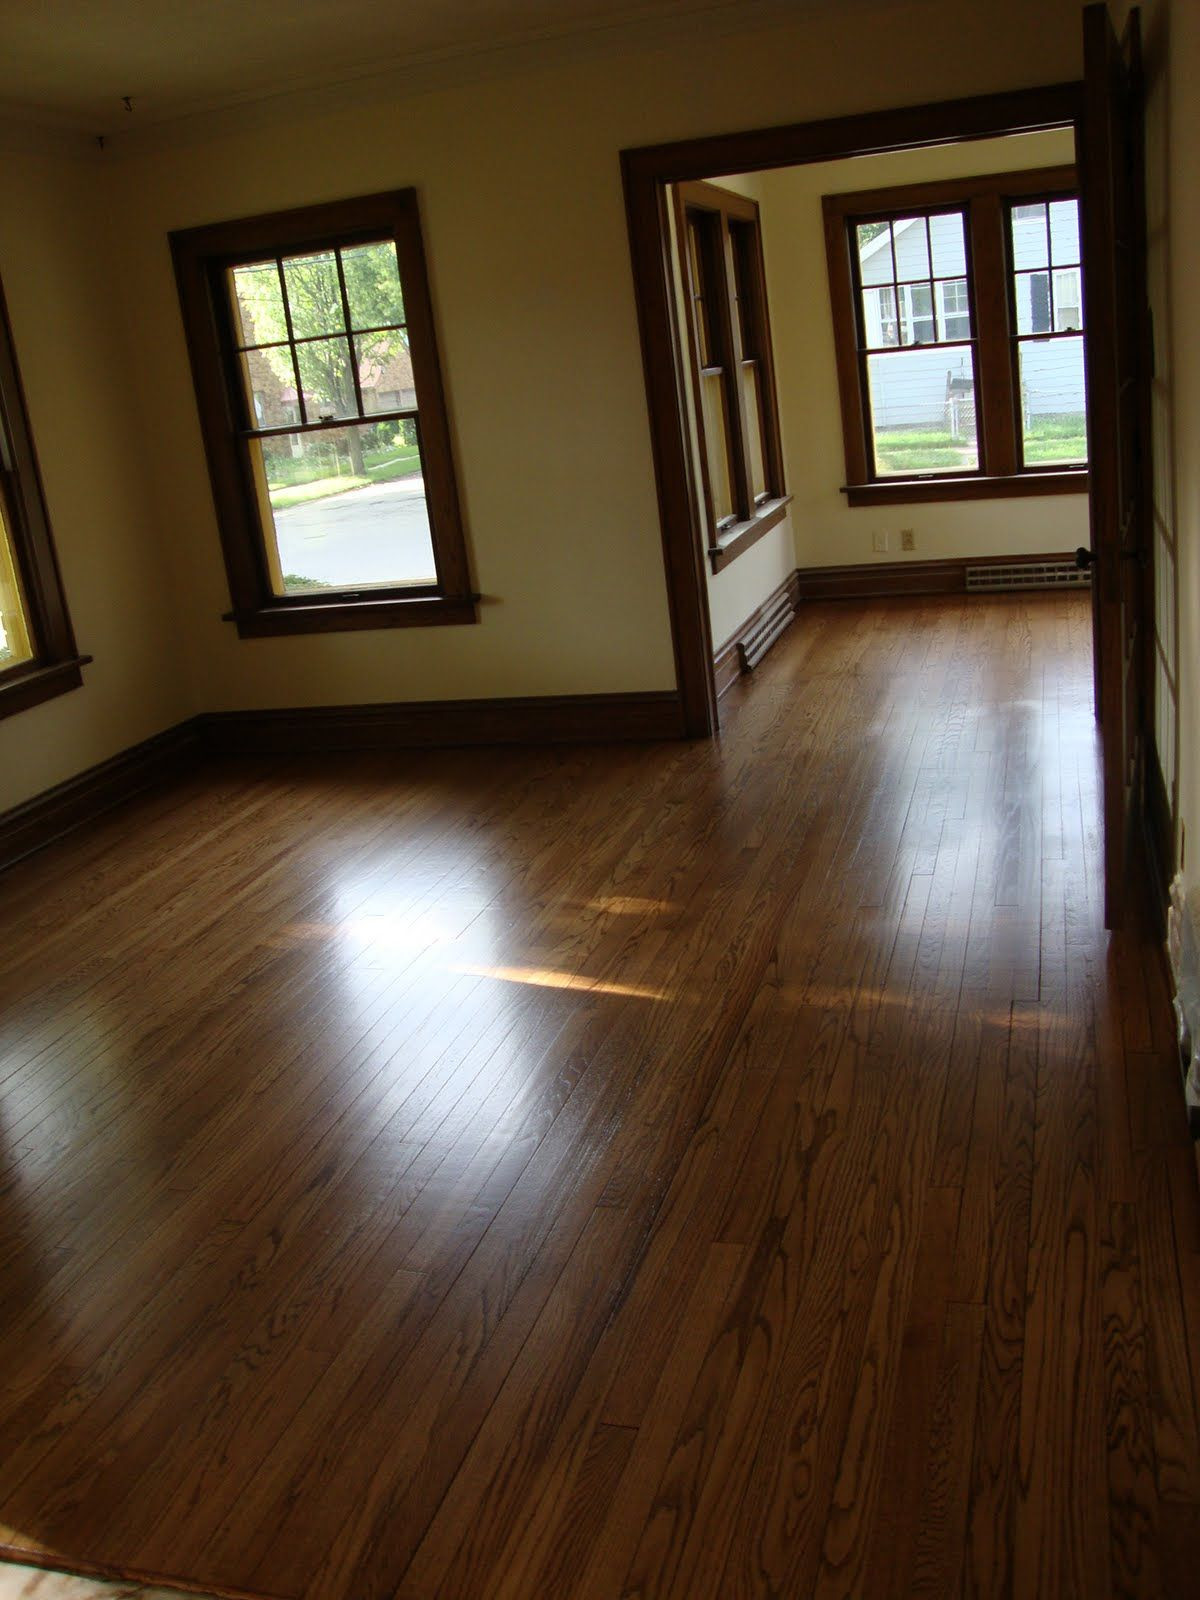 Average Cost Per Square Foot to Refinish Hardwood Floors Of Cost Per Square Foot to Refinish Hardwood Floors Cork Flooring In An In Cost Per Square Foot to Refinish Hardwood Floors Dark Wood Trim with Hardwood Floors and Lighter